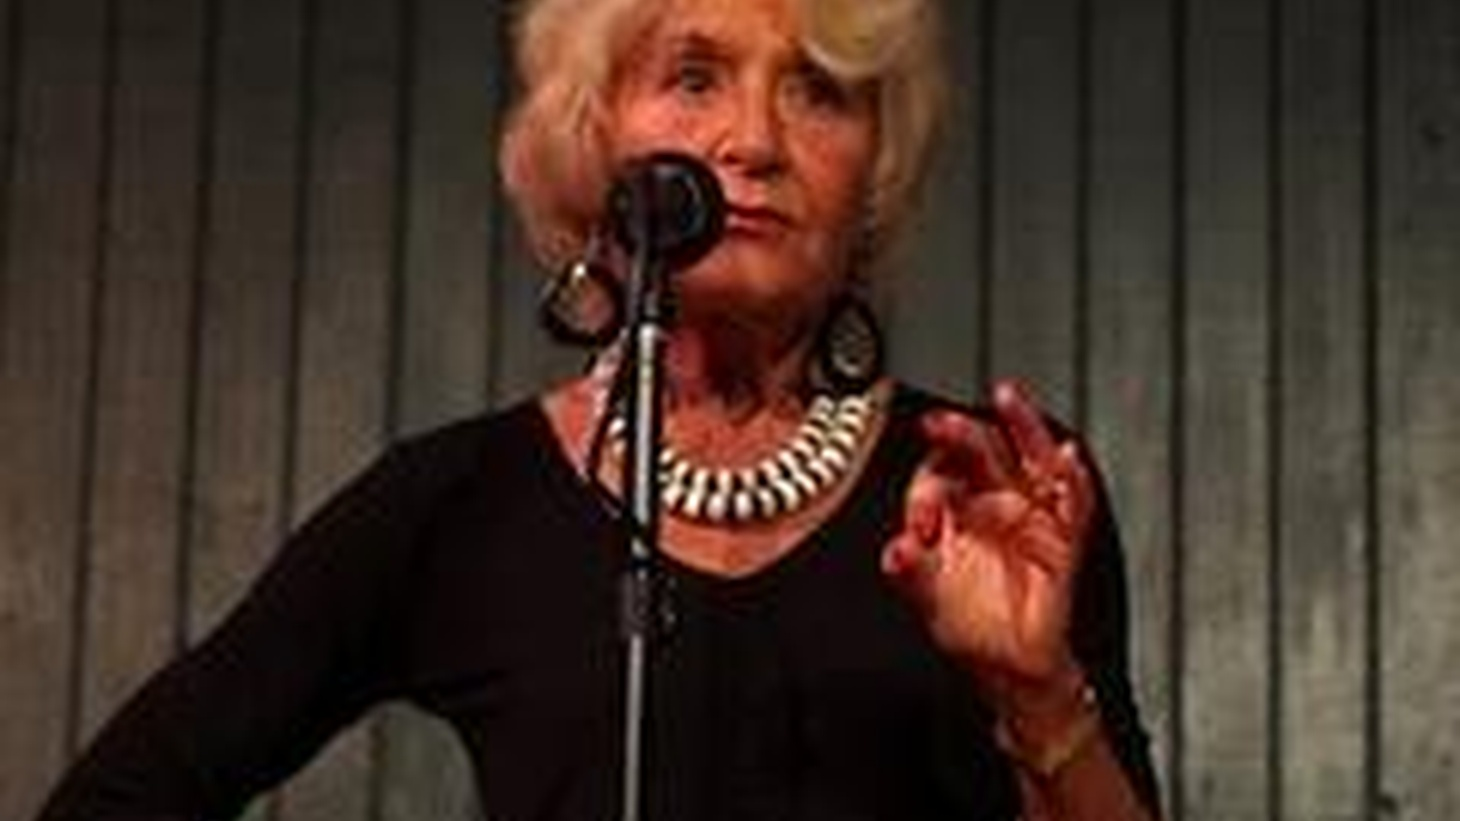 A special live edition of The Moth in Martha's Vineyard, hosted by Jenny Allen.